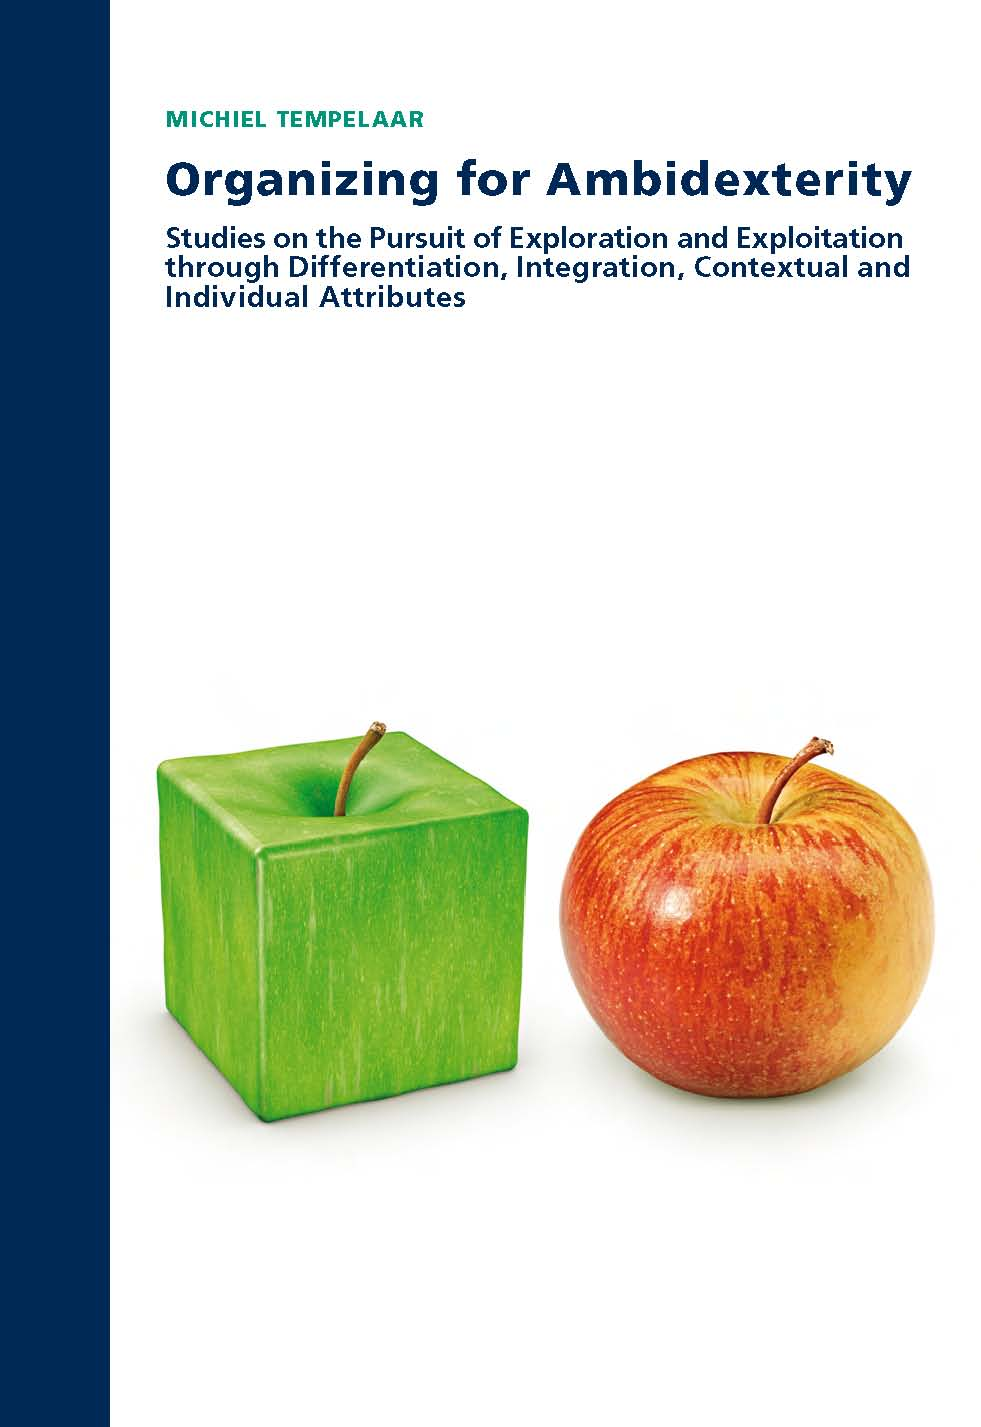 Organizing for Ambidexterity: Studies on the pursuit of exploration and exploitation through differentiation, integration, contextual and individual attributes